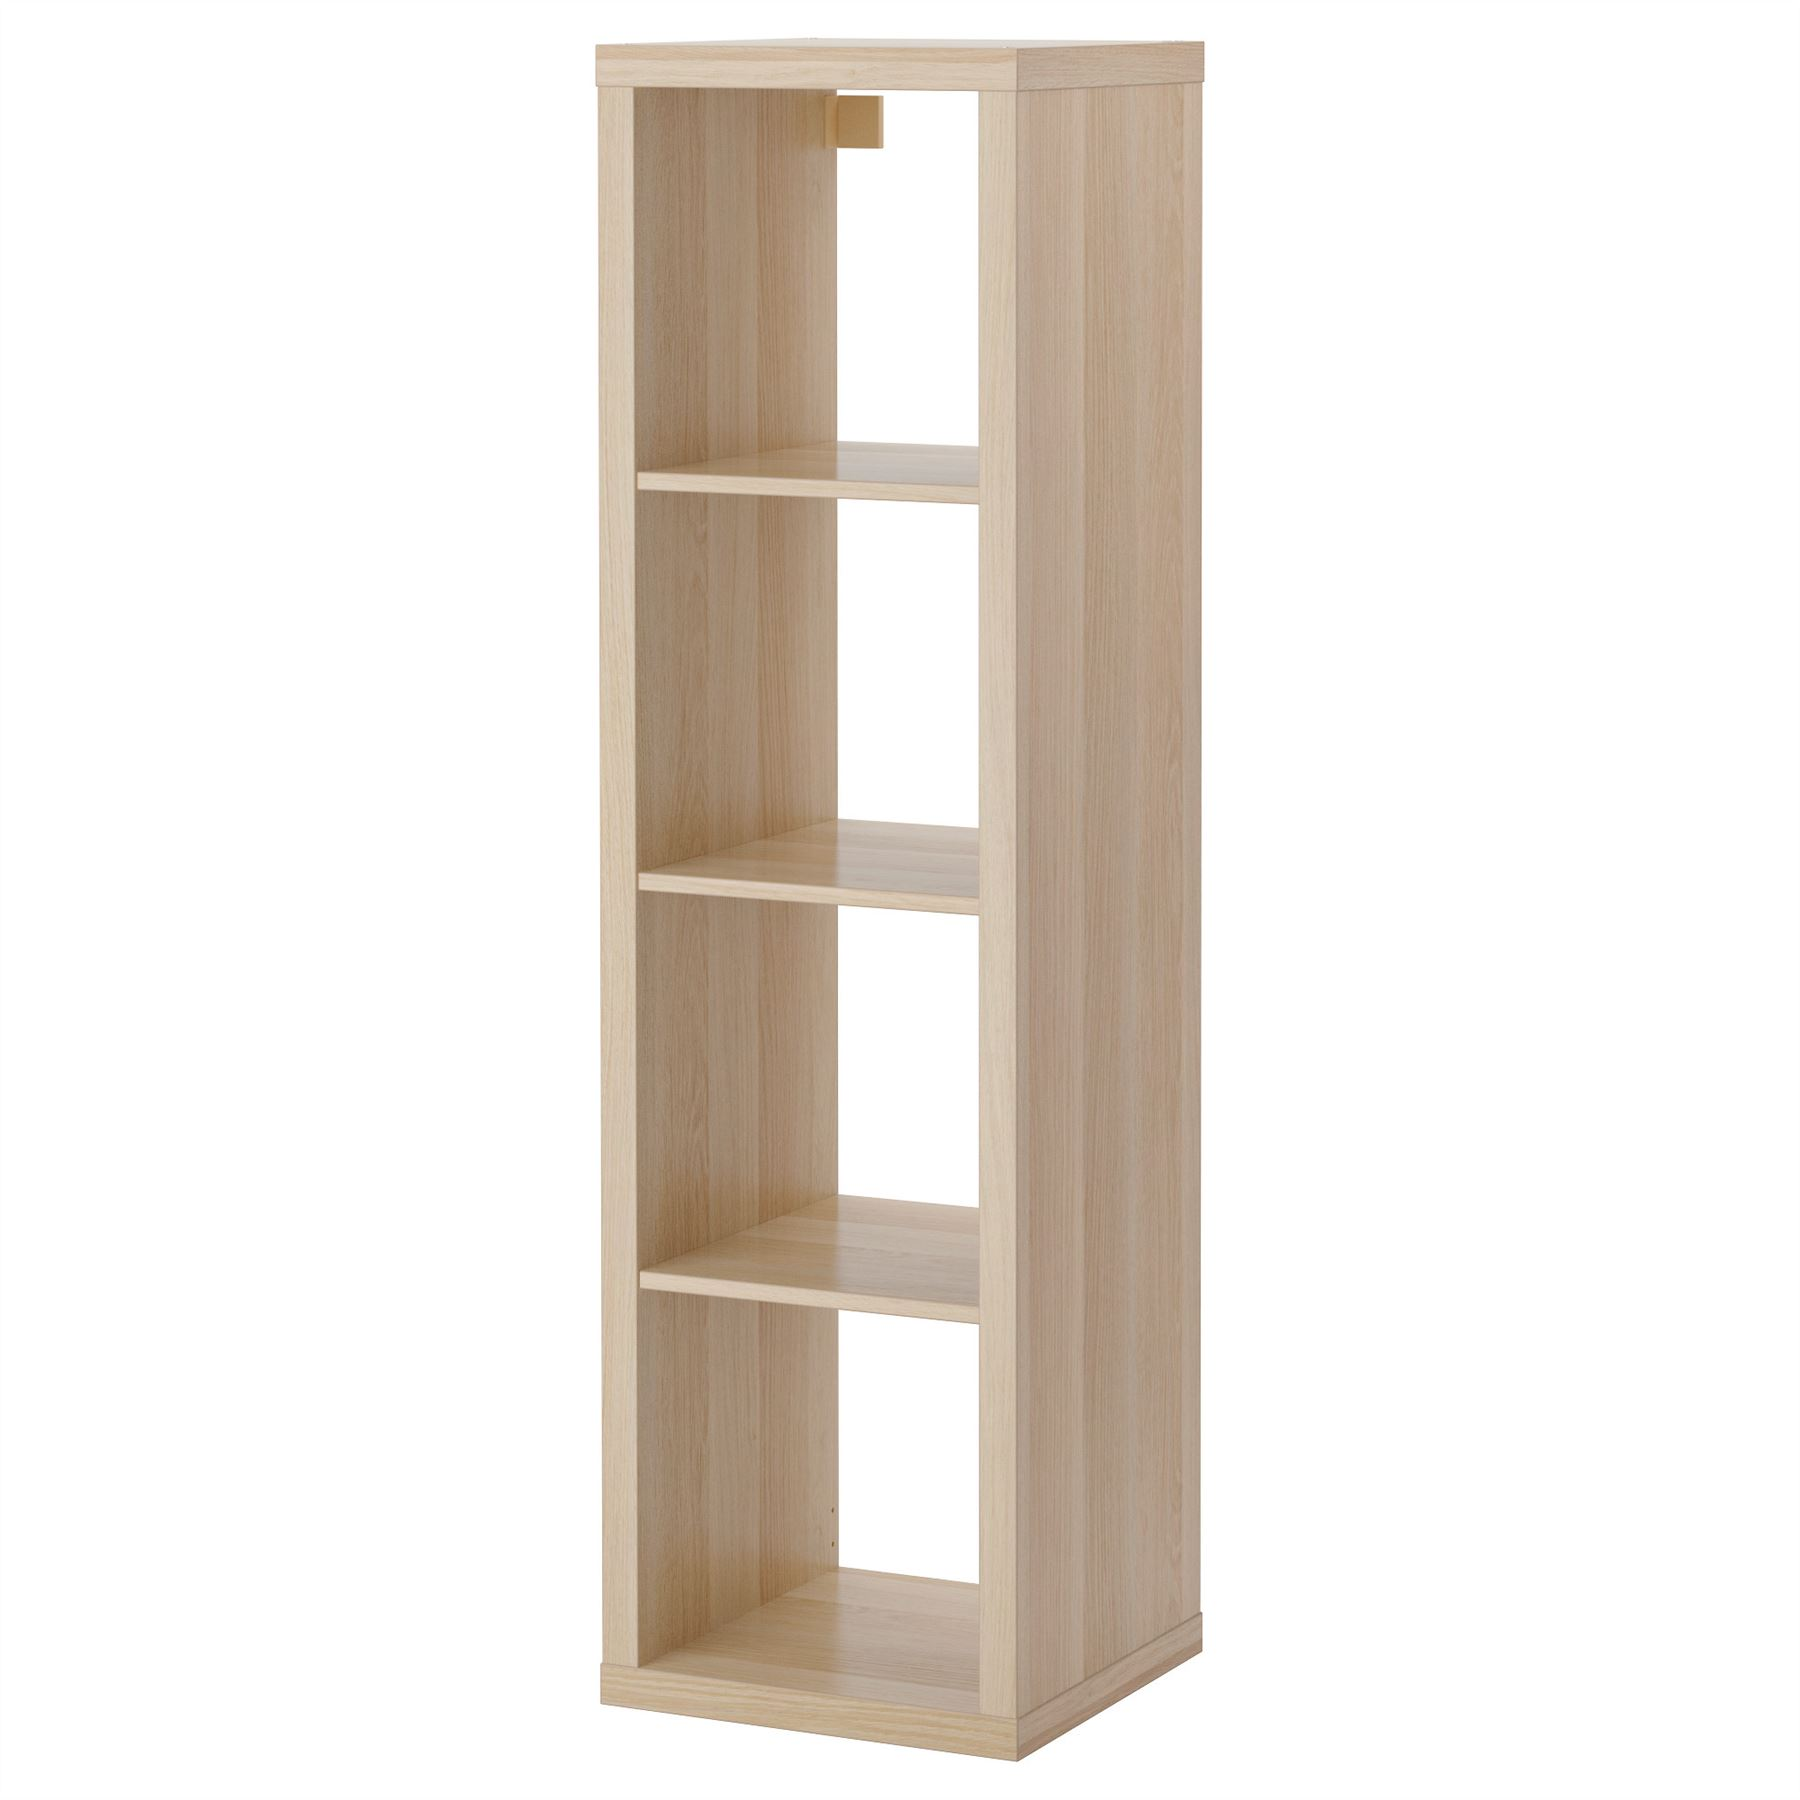 ikea kallax 4 cube storage bookcase rectangle shelving unit white oak ebay. Black Bedroom Furniture Sets. Home Design Ideas